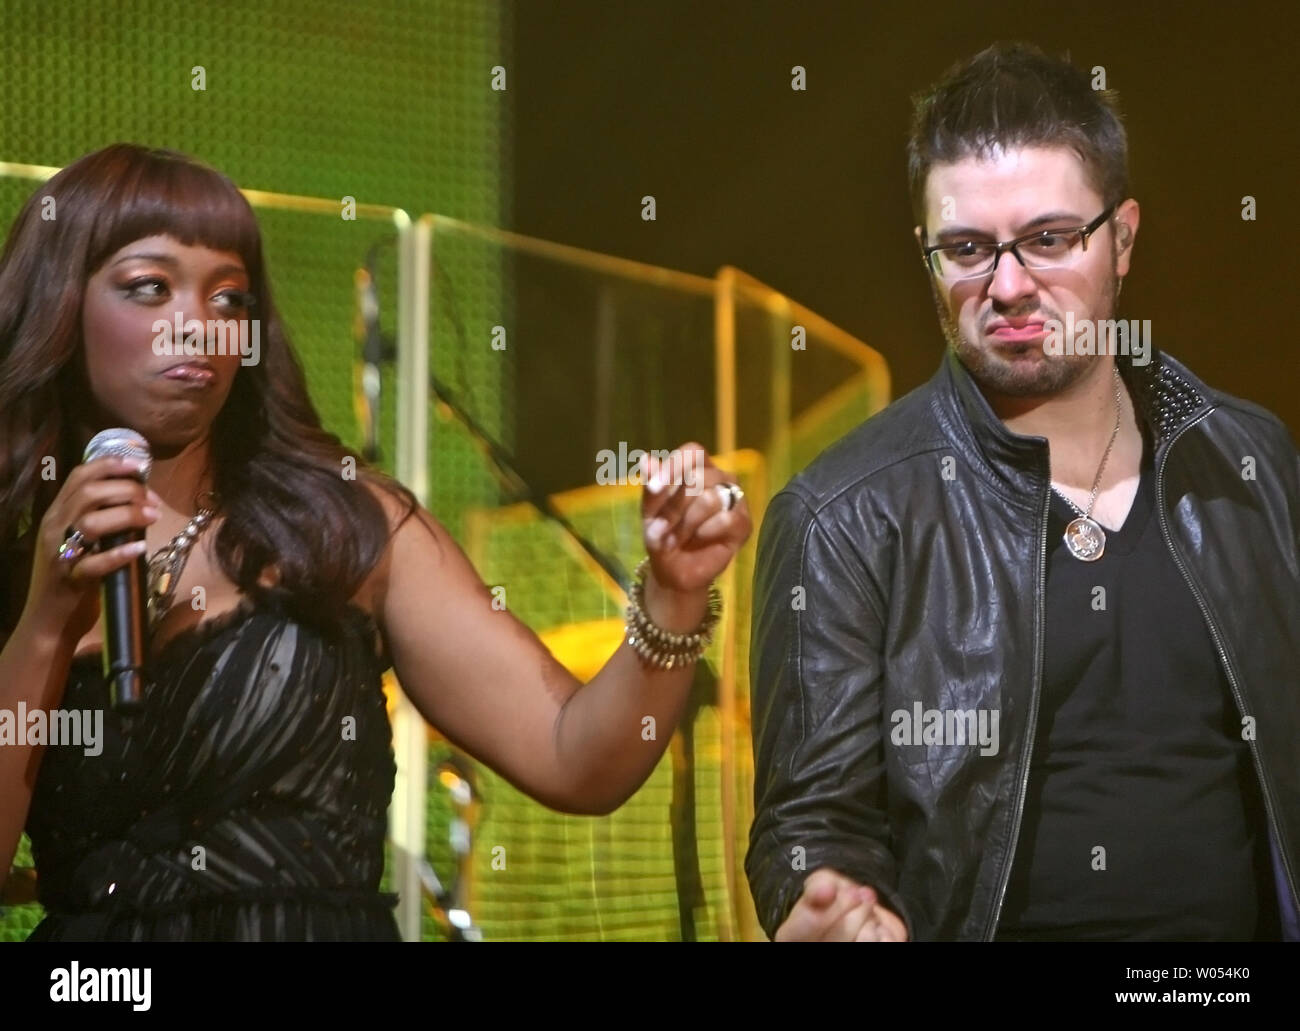 american-idol-finalists-lil-rounds-and-danny-gokey-perform-as-part-of-the-american-idols-live!-tour-2009-at-the-san-diego-sports-arena-on-july-18-2009-upi-photoroger-williams-W054K0.jpg